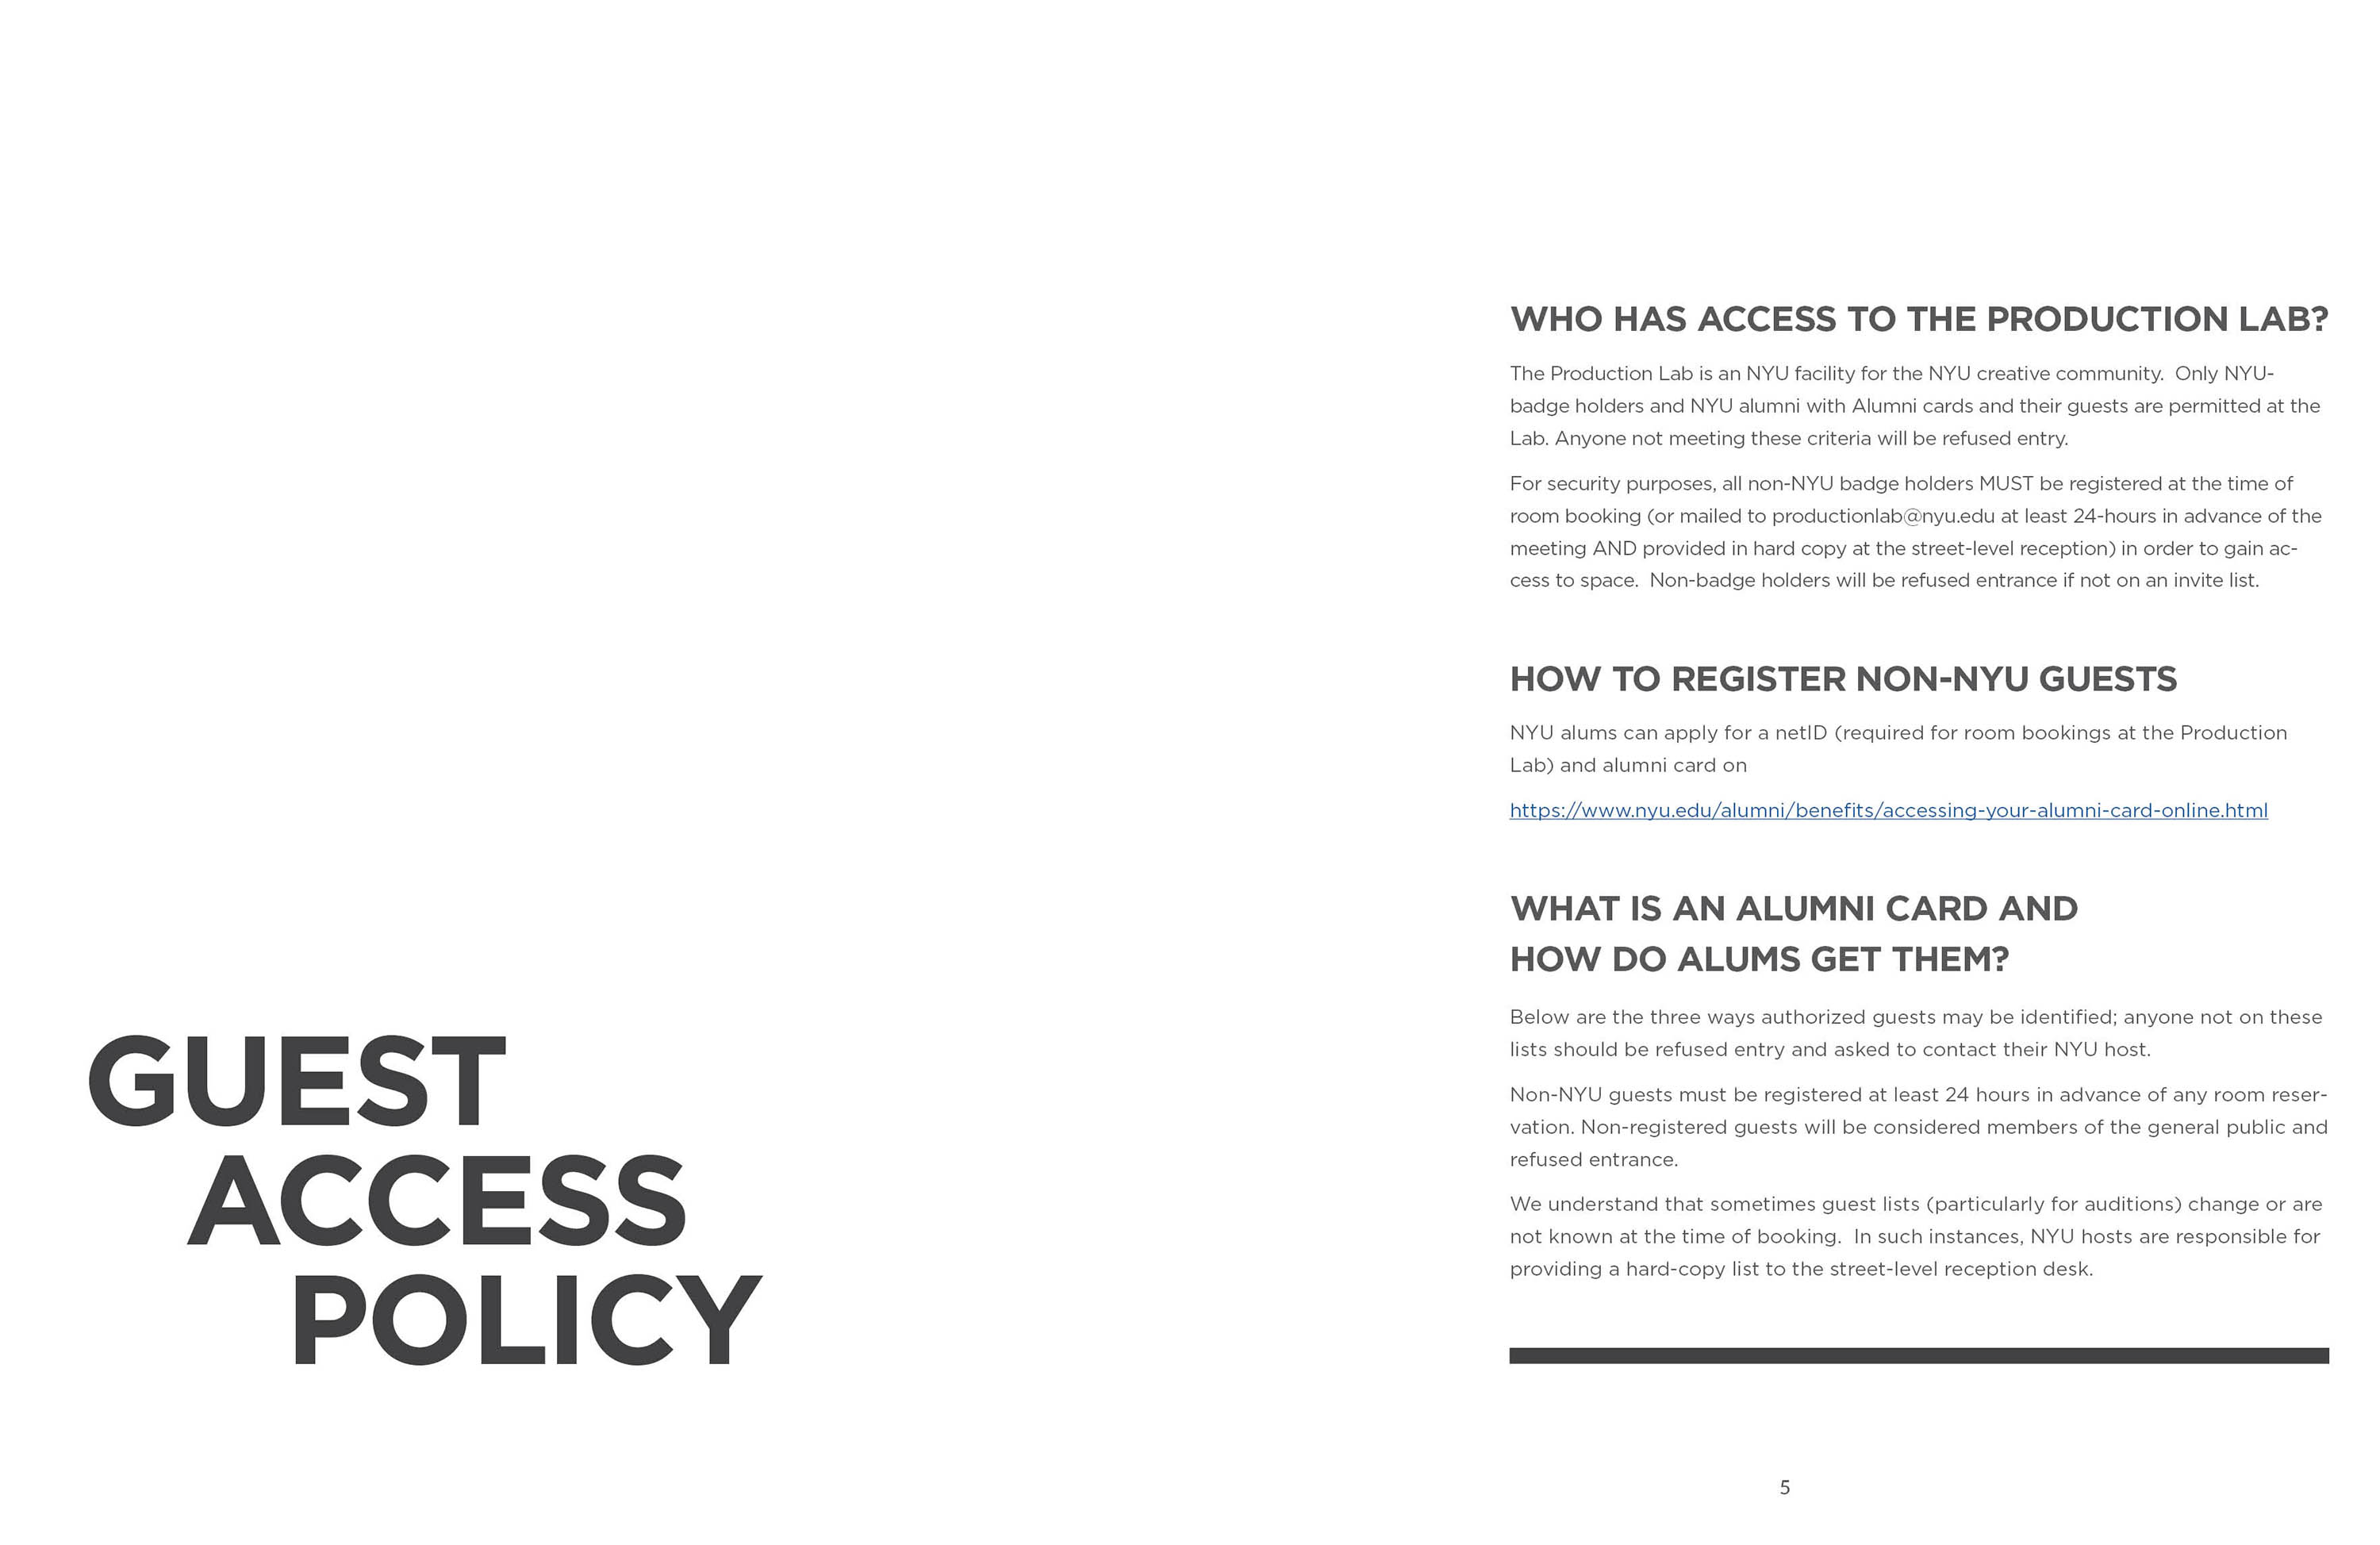 guest access policy